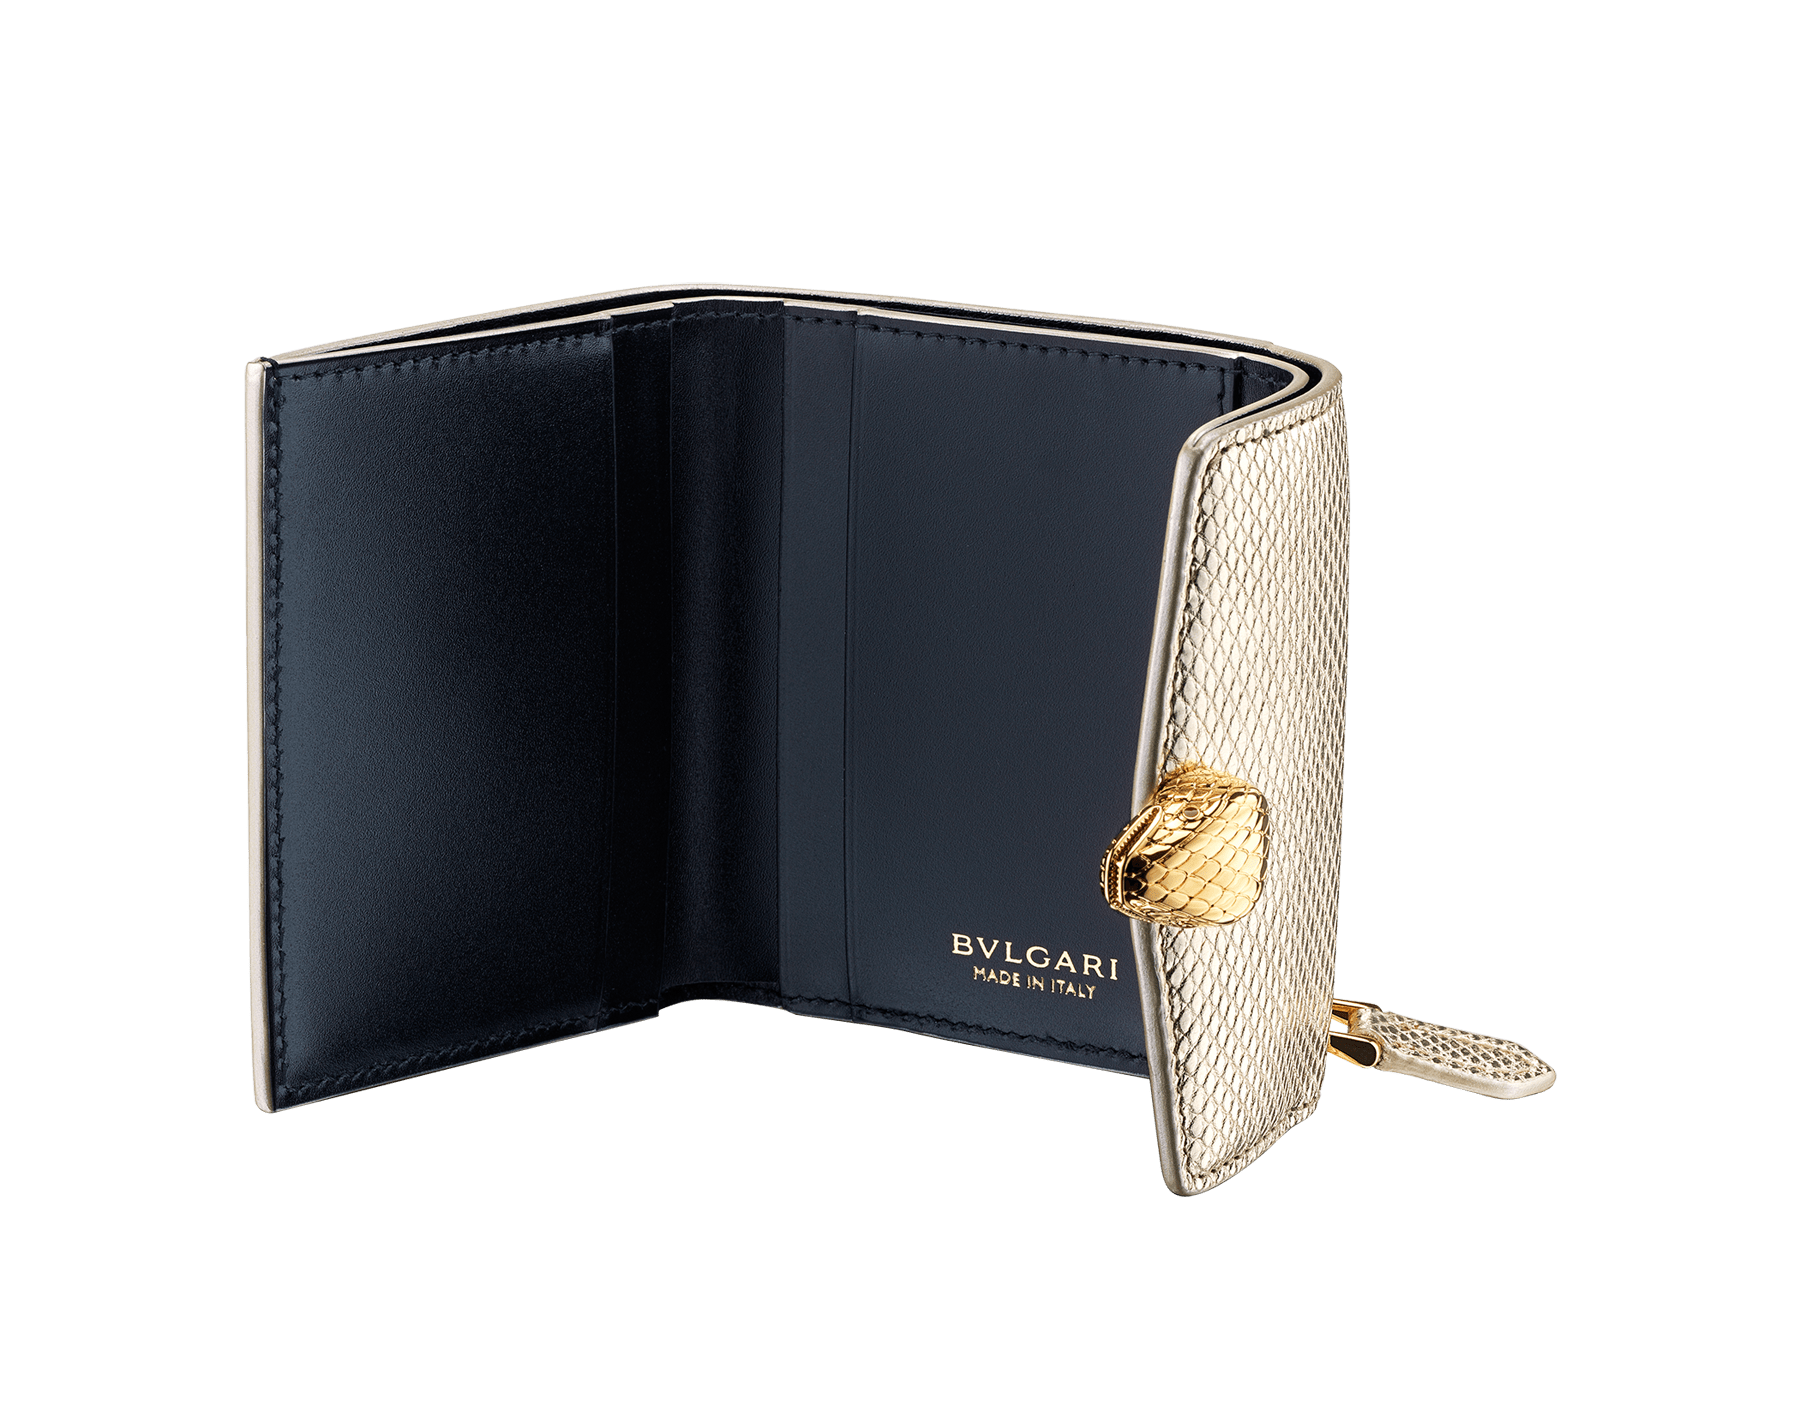 """Slender, compact """"Serpenti Forever"""" wallet in """"Molten"""" gold karung skin and black calfskin, offering a touch of radiance for the Winter Holidays. New Serpenti head closure in gold-plated brass, complete with ruby-red enamel eyes. SEA-SLIMCOMPACT-MoltK image 2"""